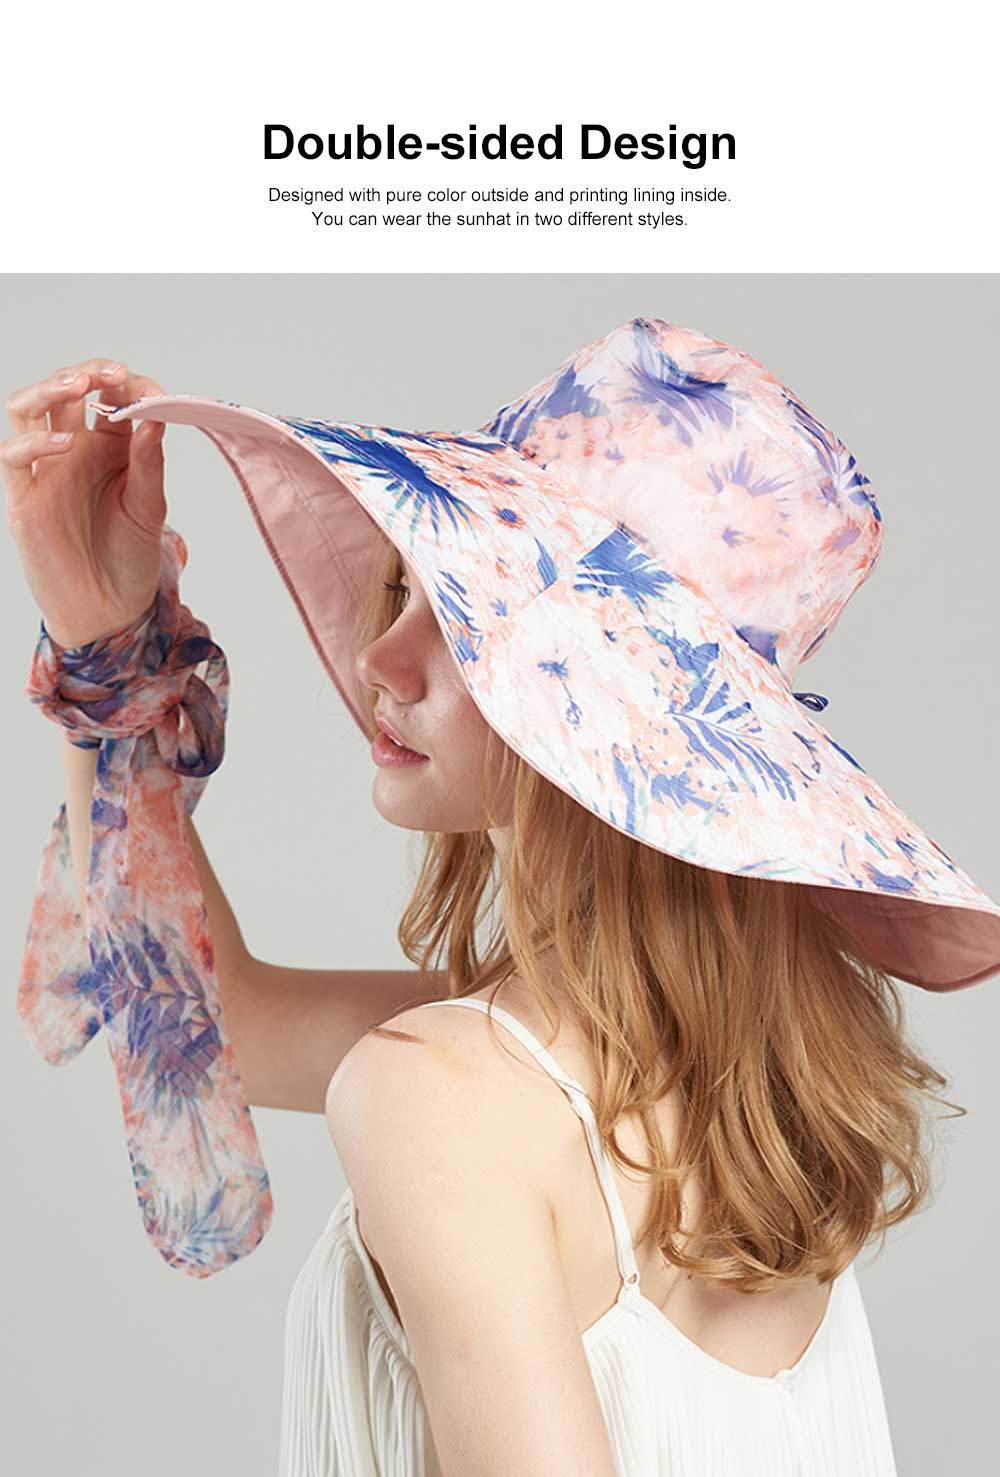 Folding Sunhat with Breathable Material, Stylish Ribbon Hat for Women, Best Choice Summer Sunhat for Beach, Outdoors 2